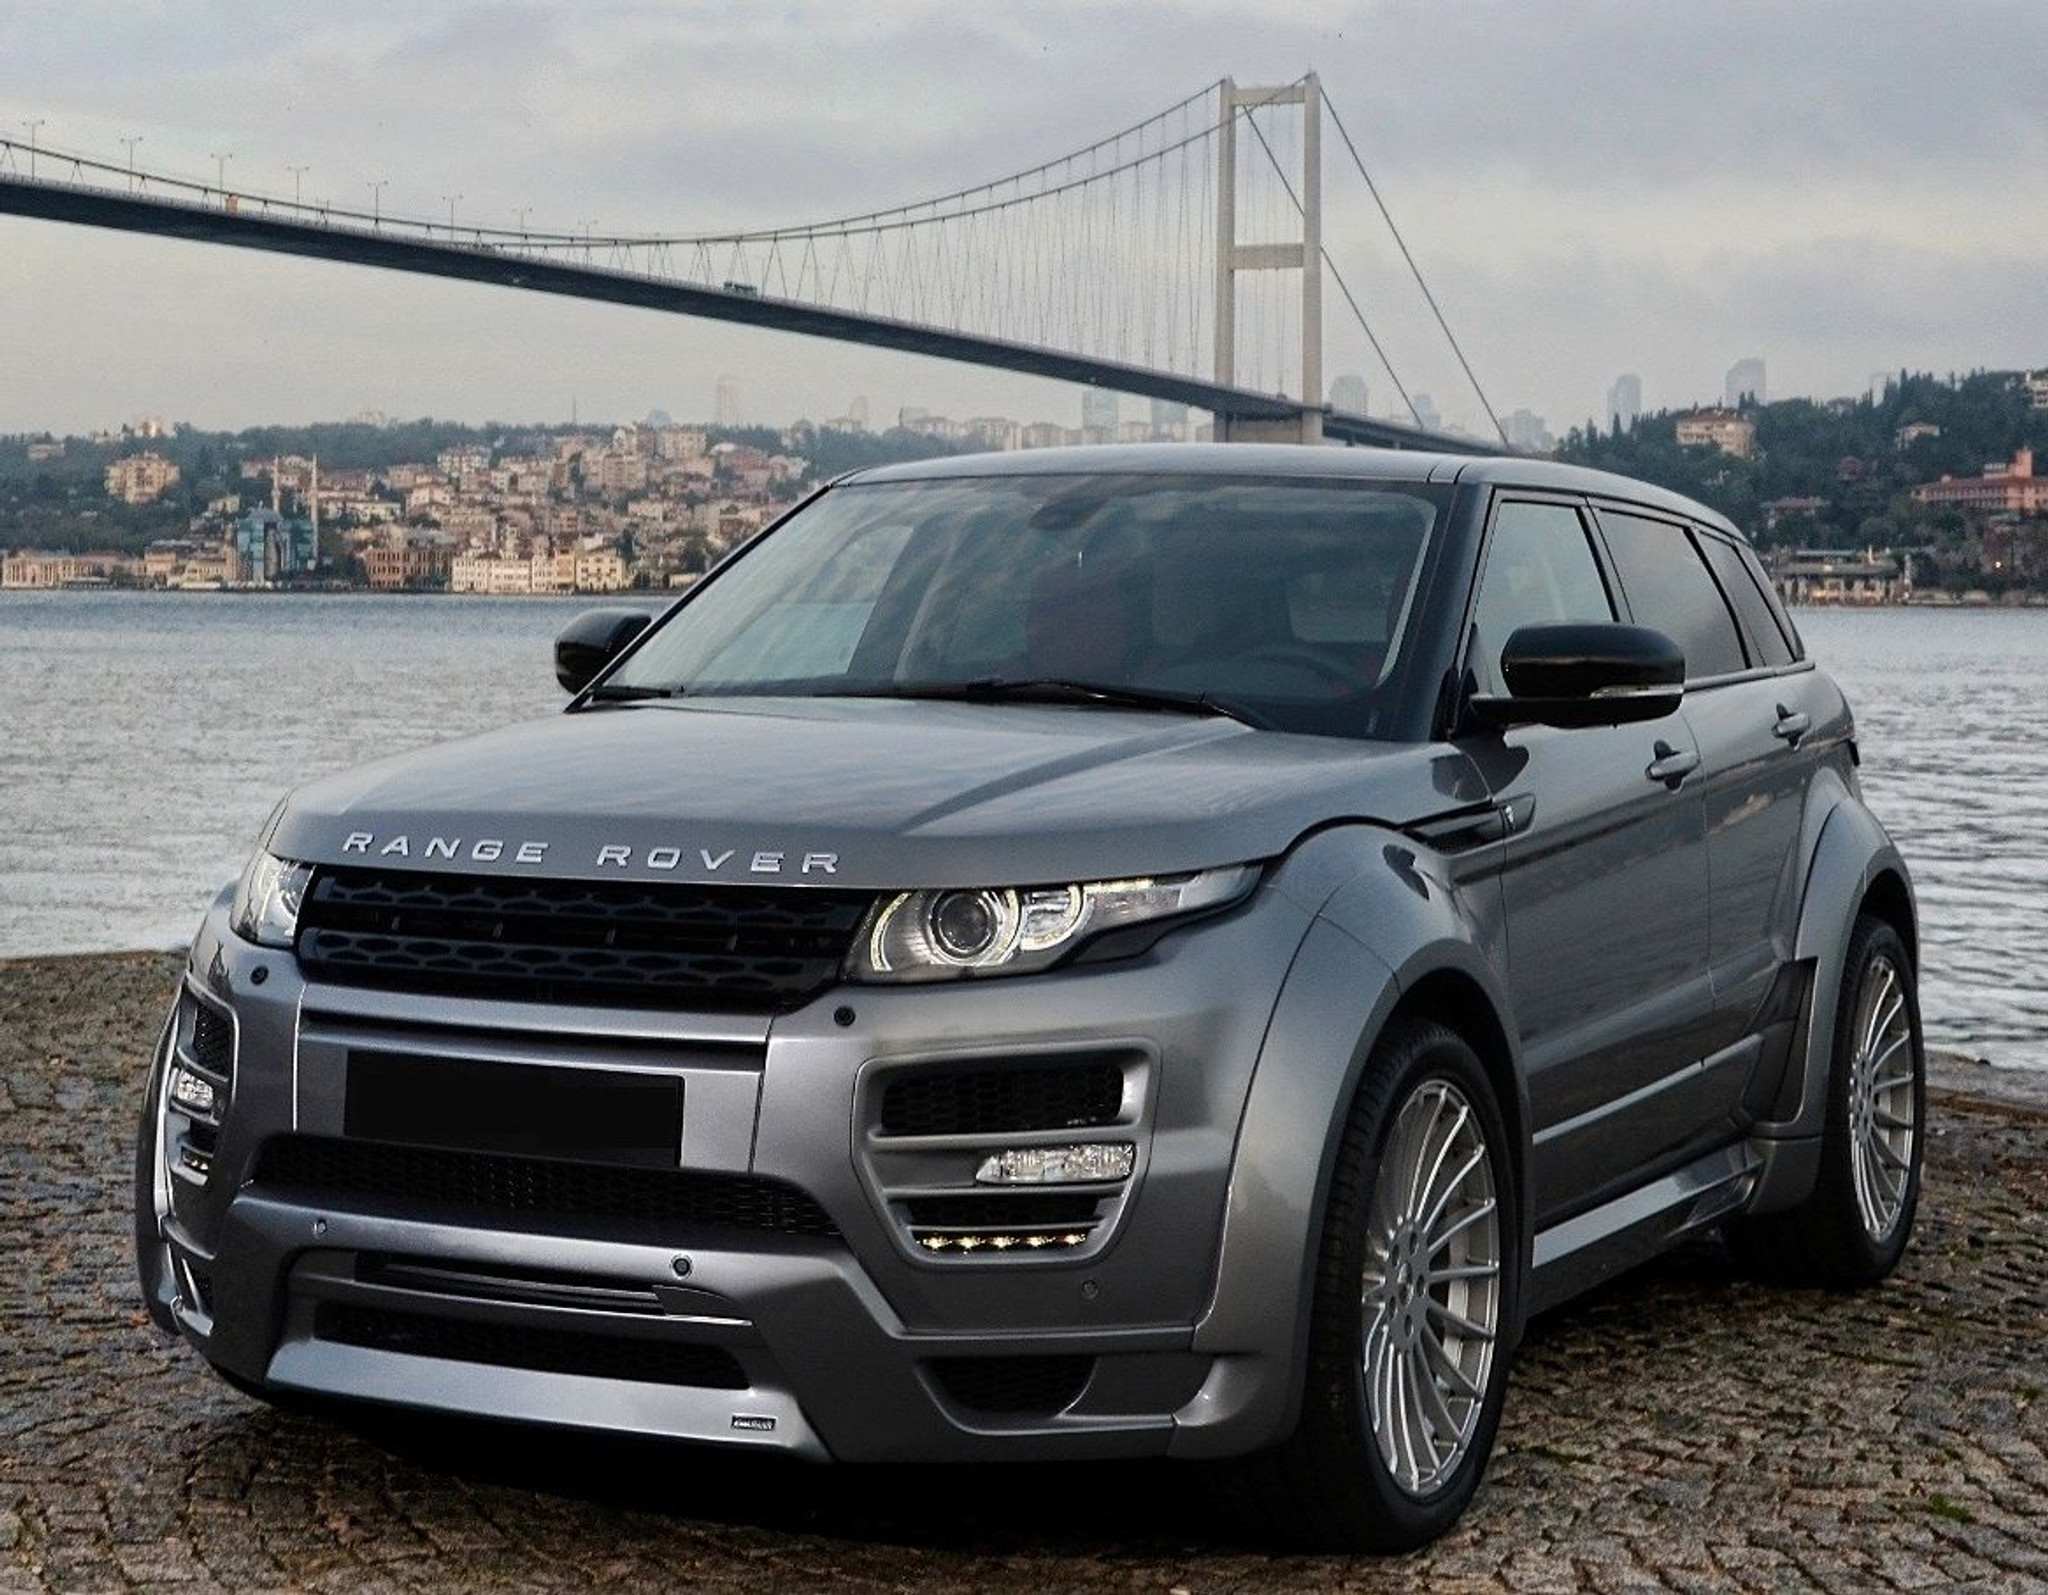 Range Rover Evoque H Style Body Kit Meduza Design Ltd